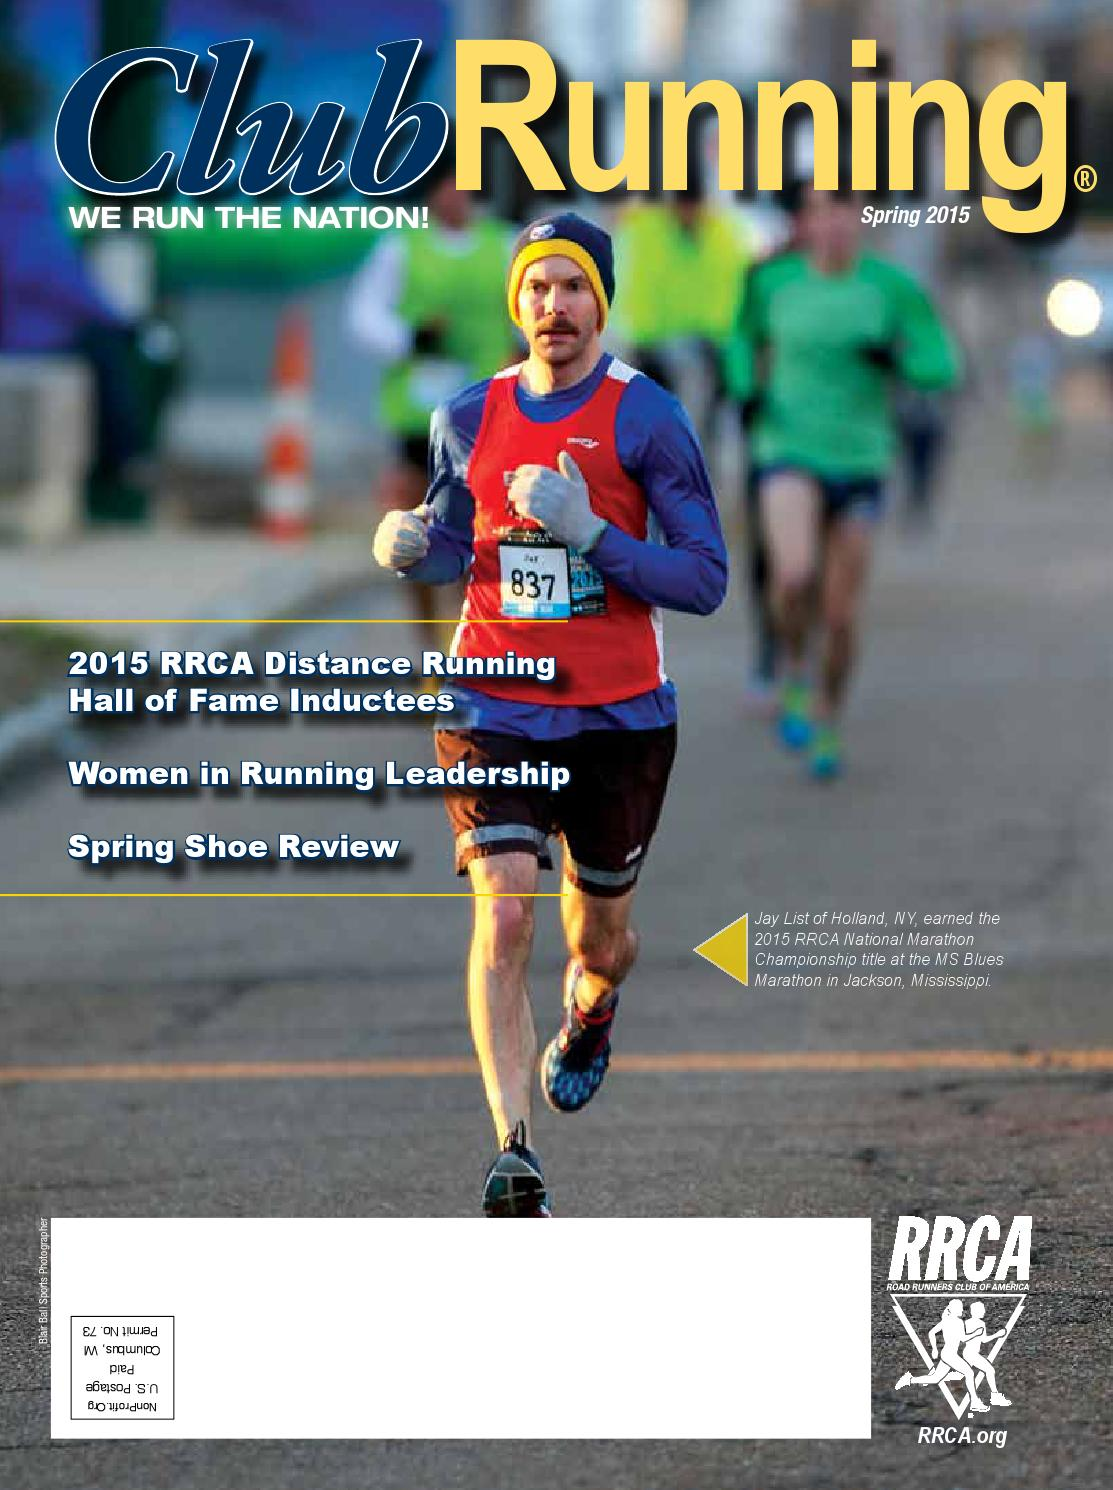 2015 Spring Club Running Magazine by Road Runners Club of